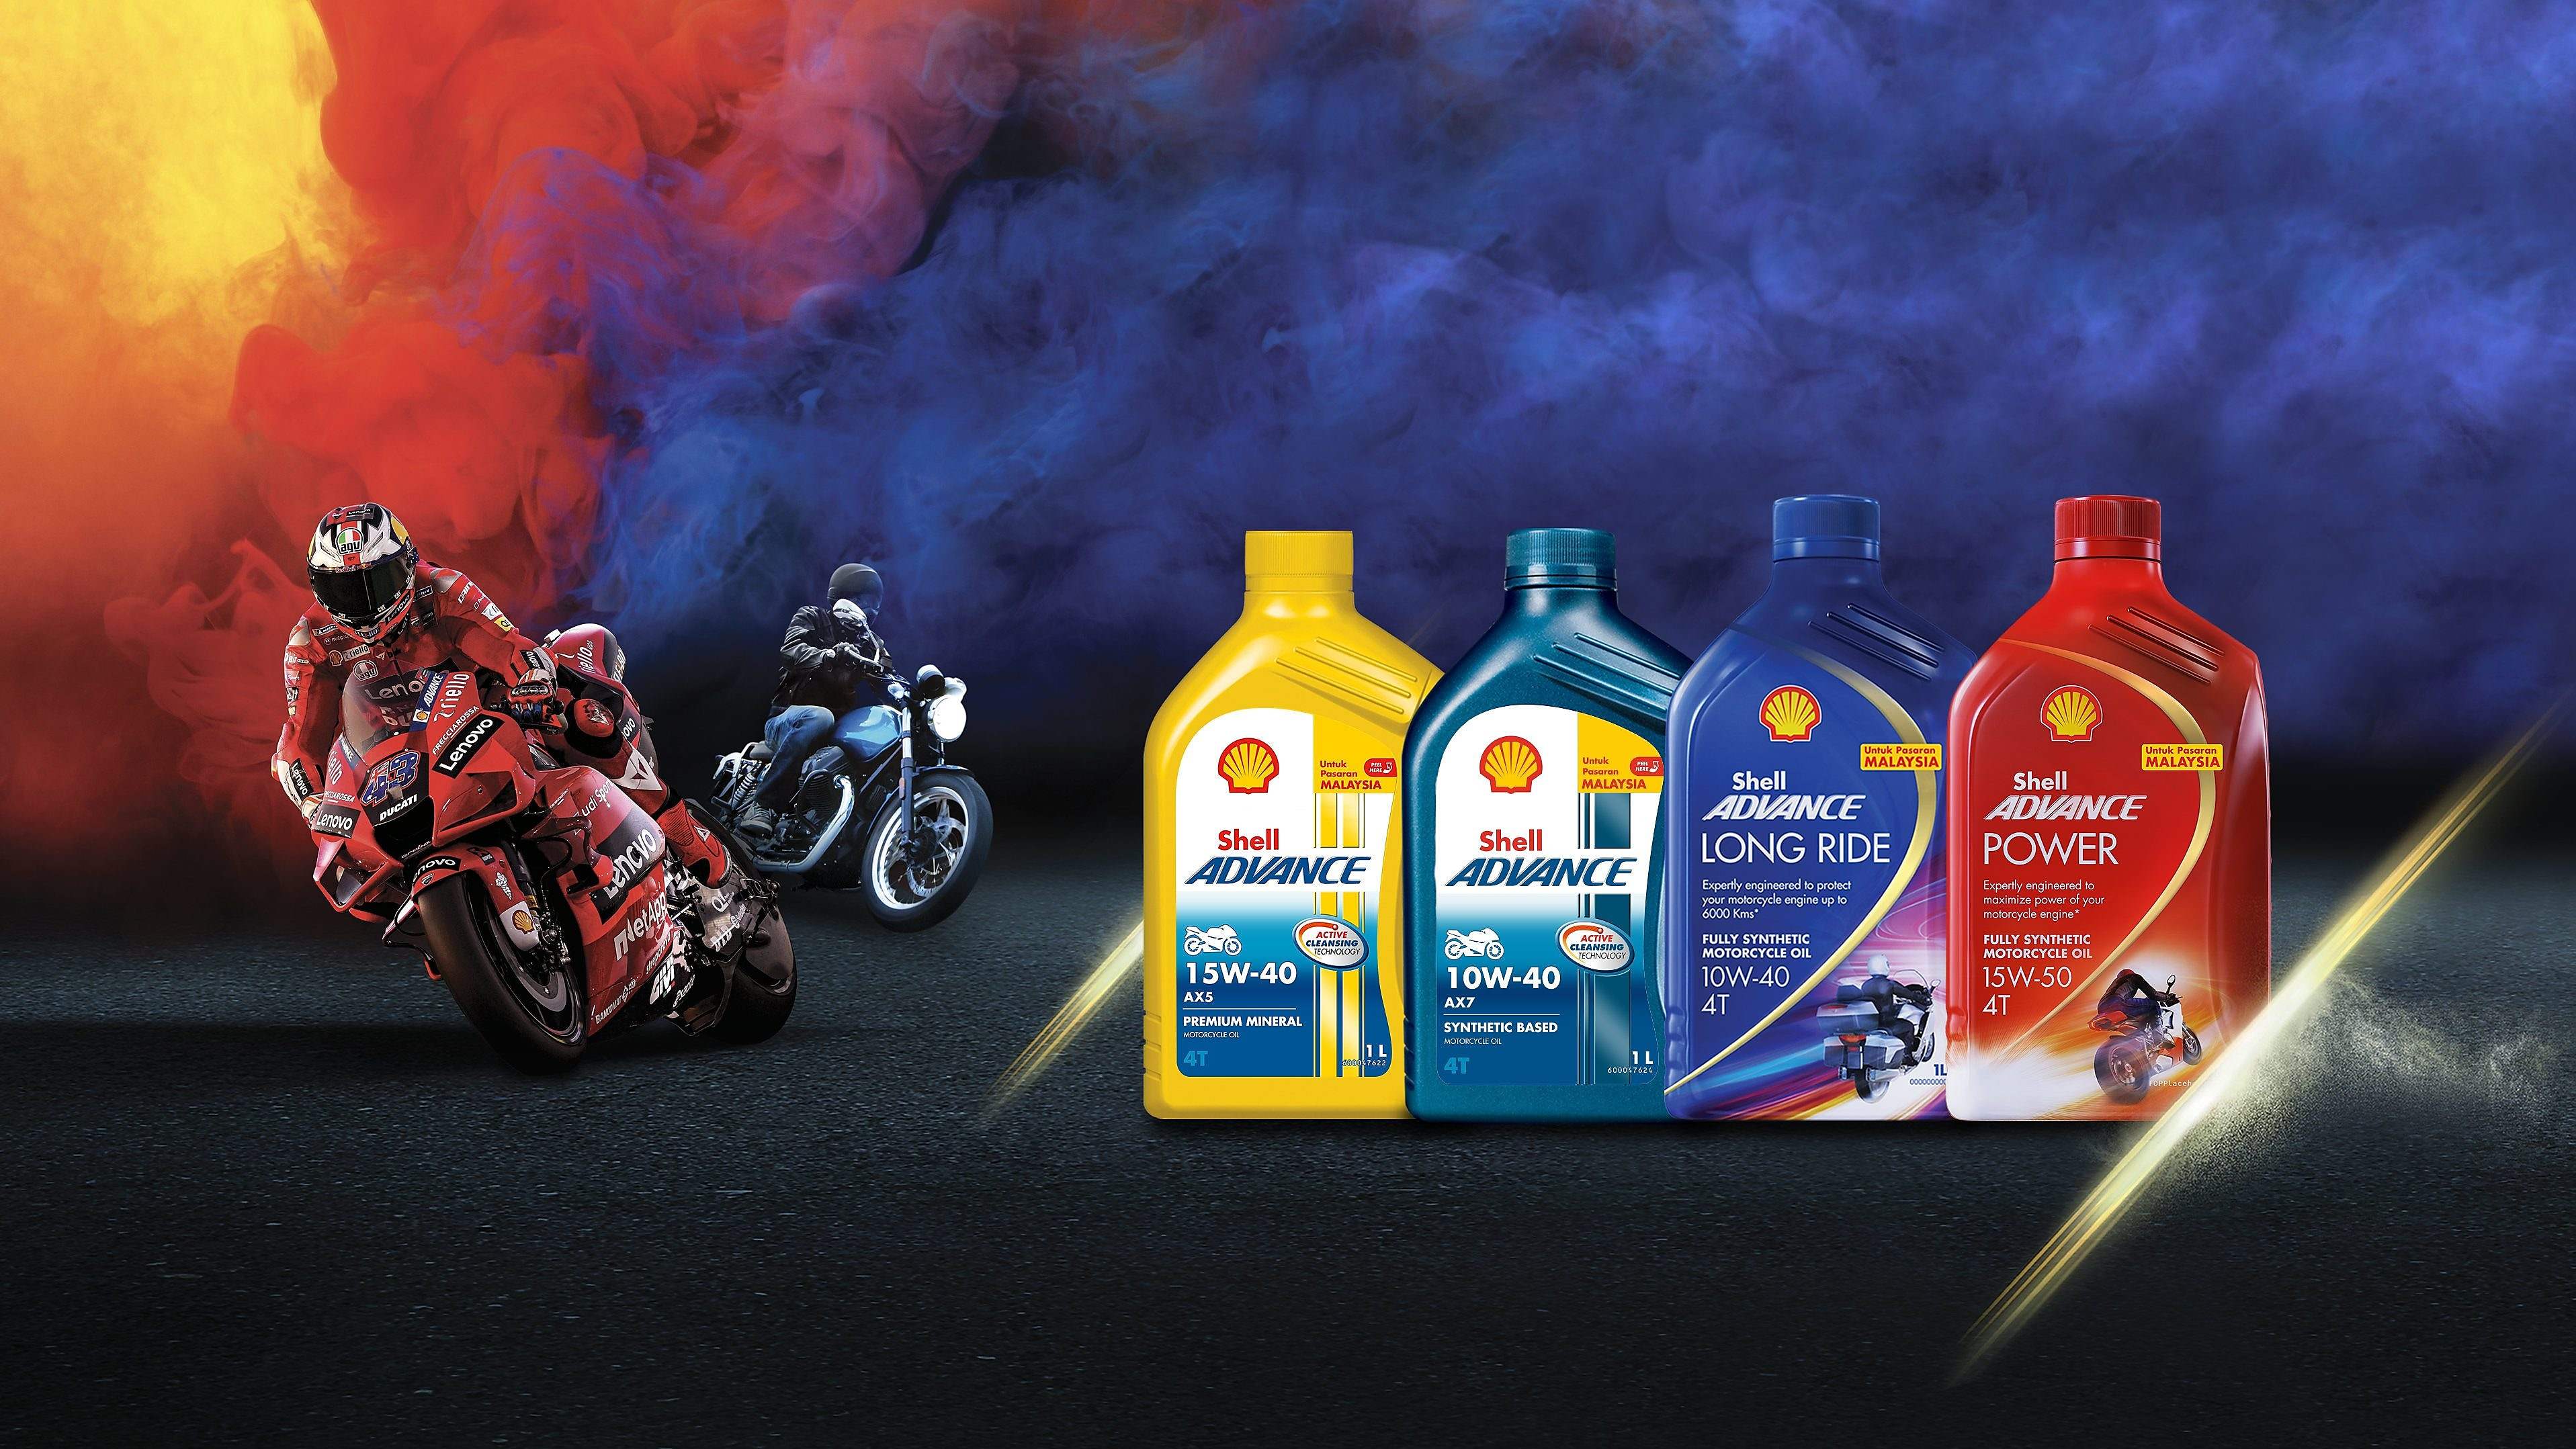 Shell Advance motorcycle engine oils